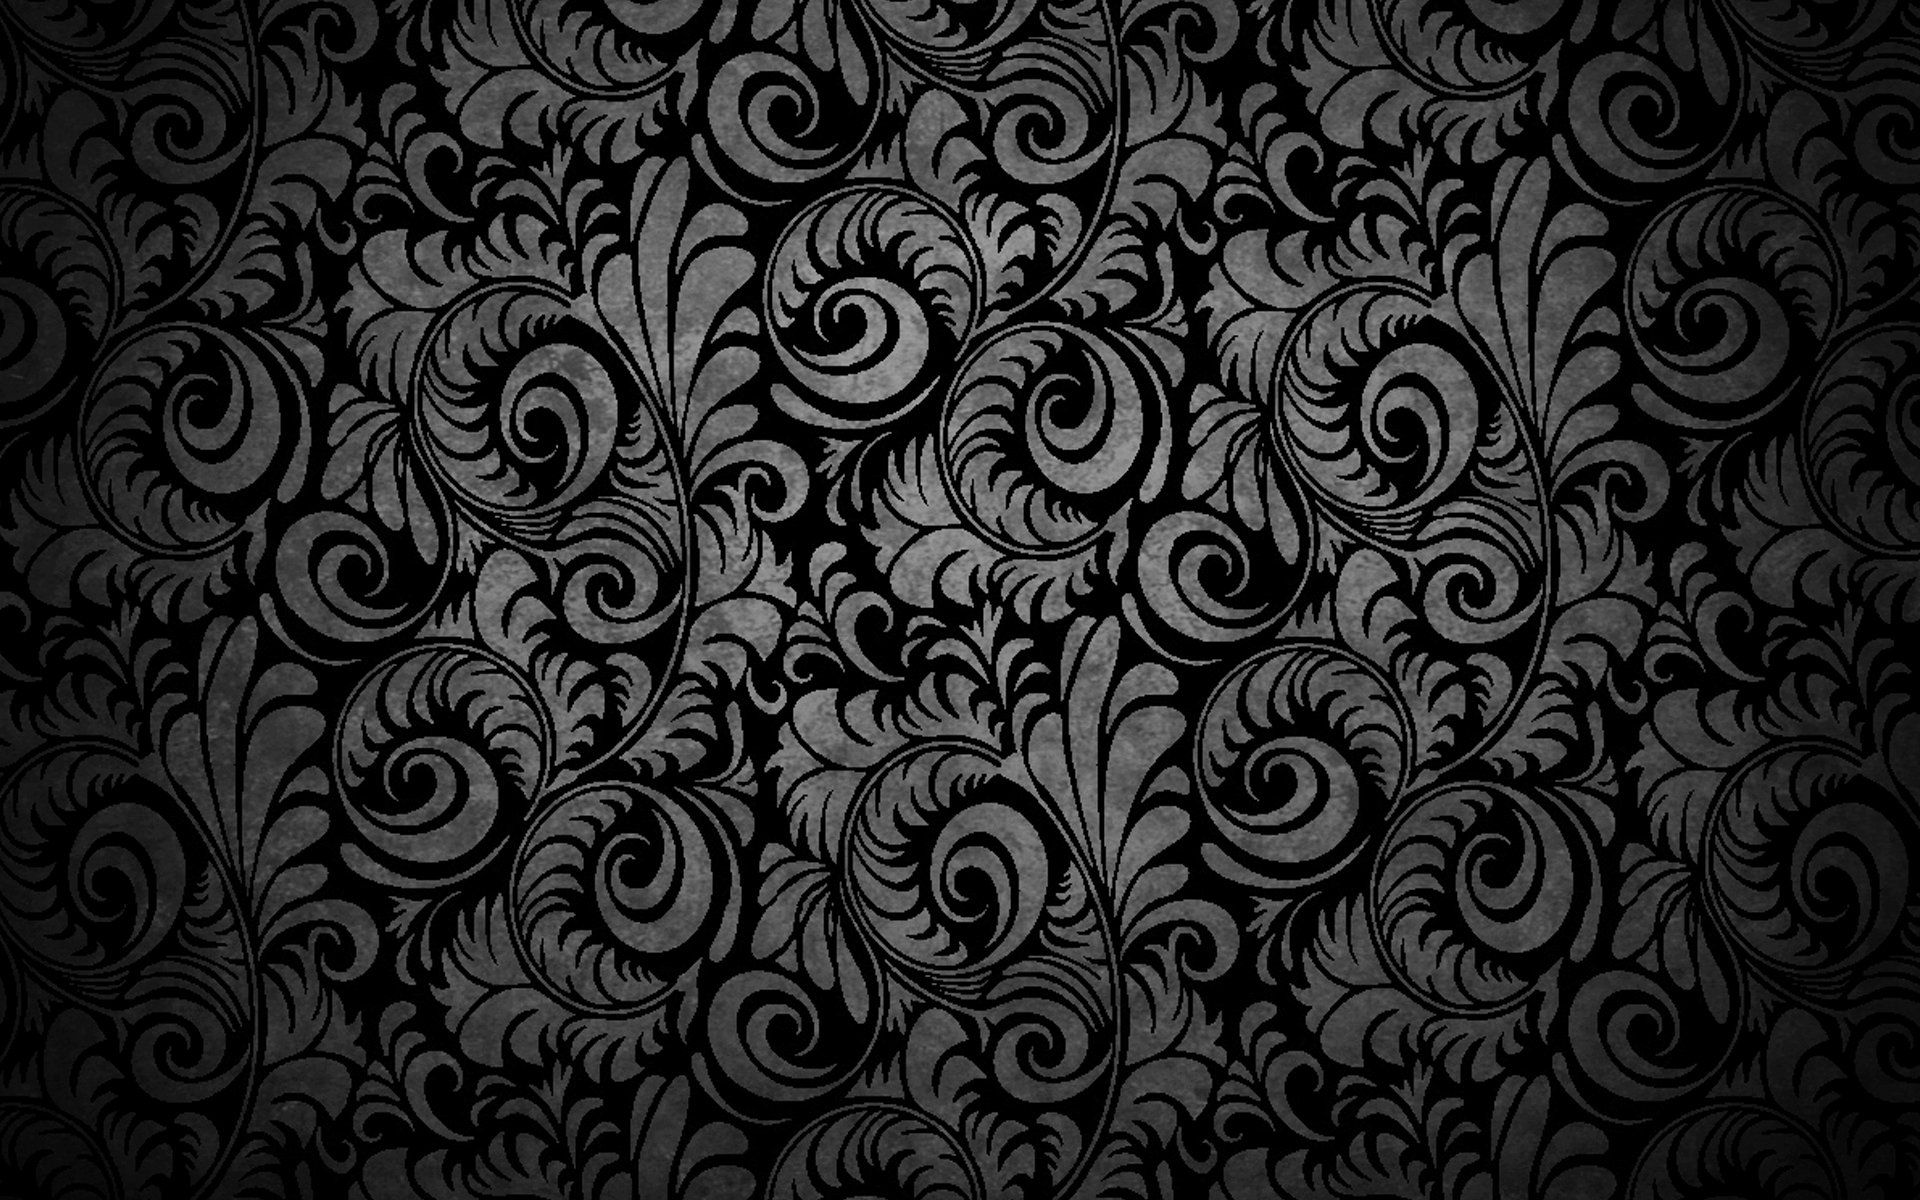 Black Abstract Design Hd Wallpapers Top Free Black